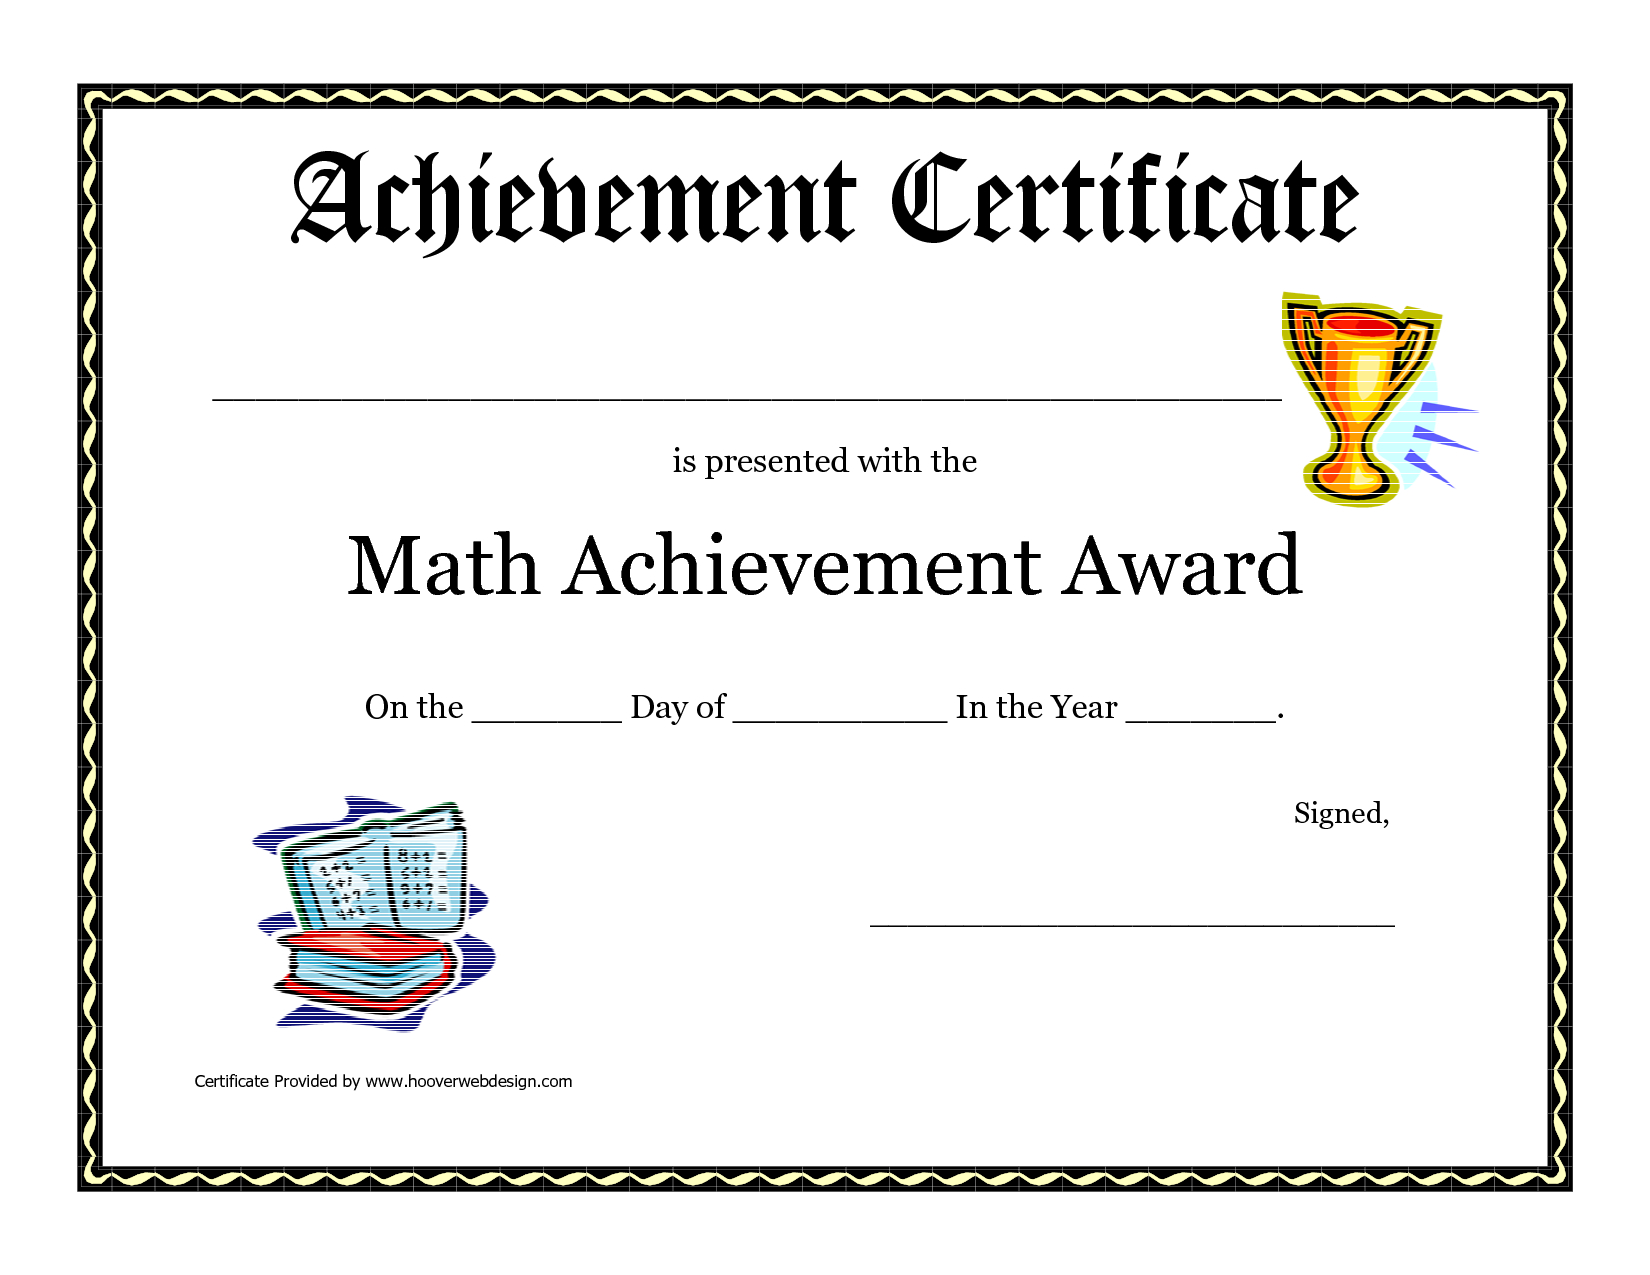 Math Achievement Award Printable Certificate Pdf | Math Activites - Free Printable Swimming Certificates For Kids